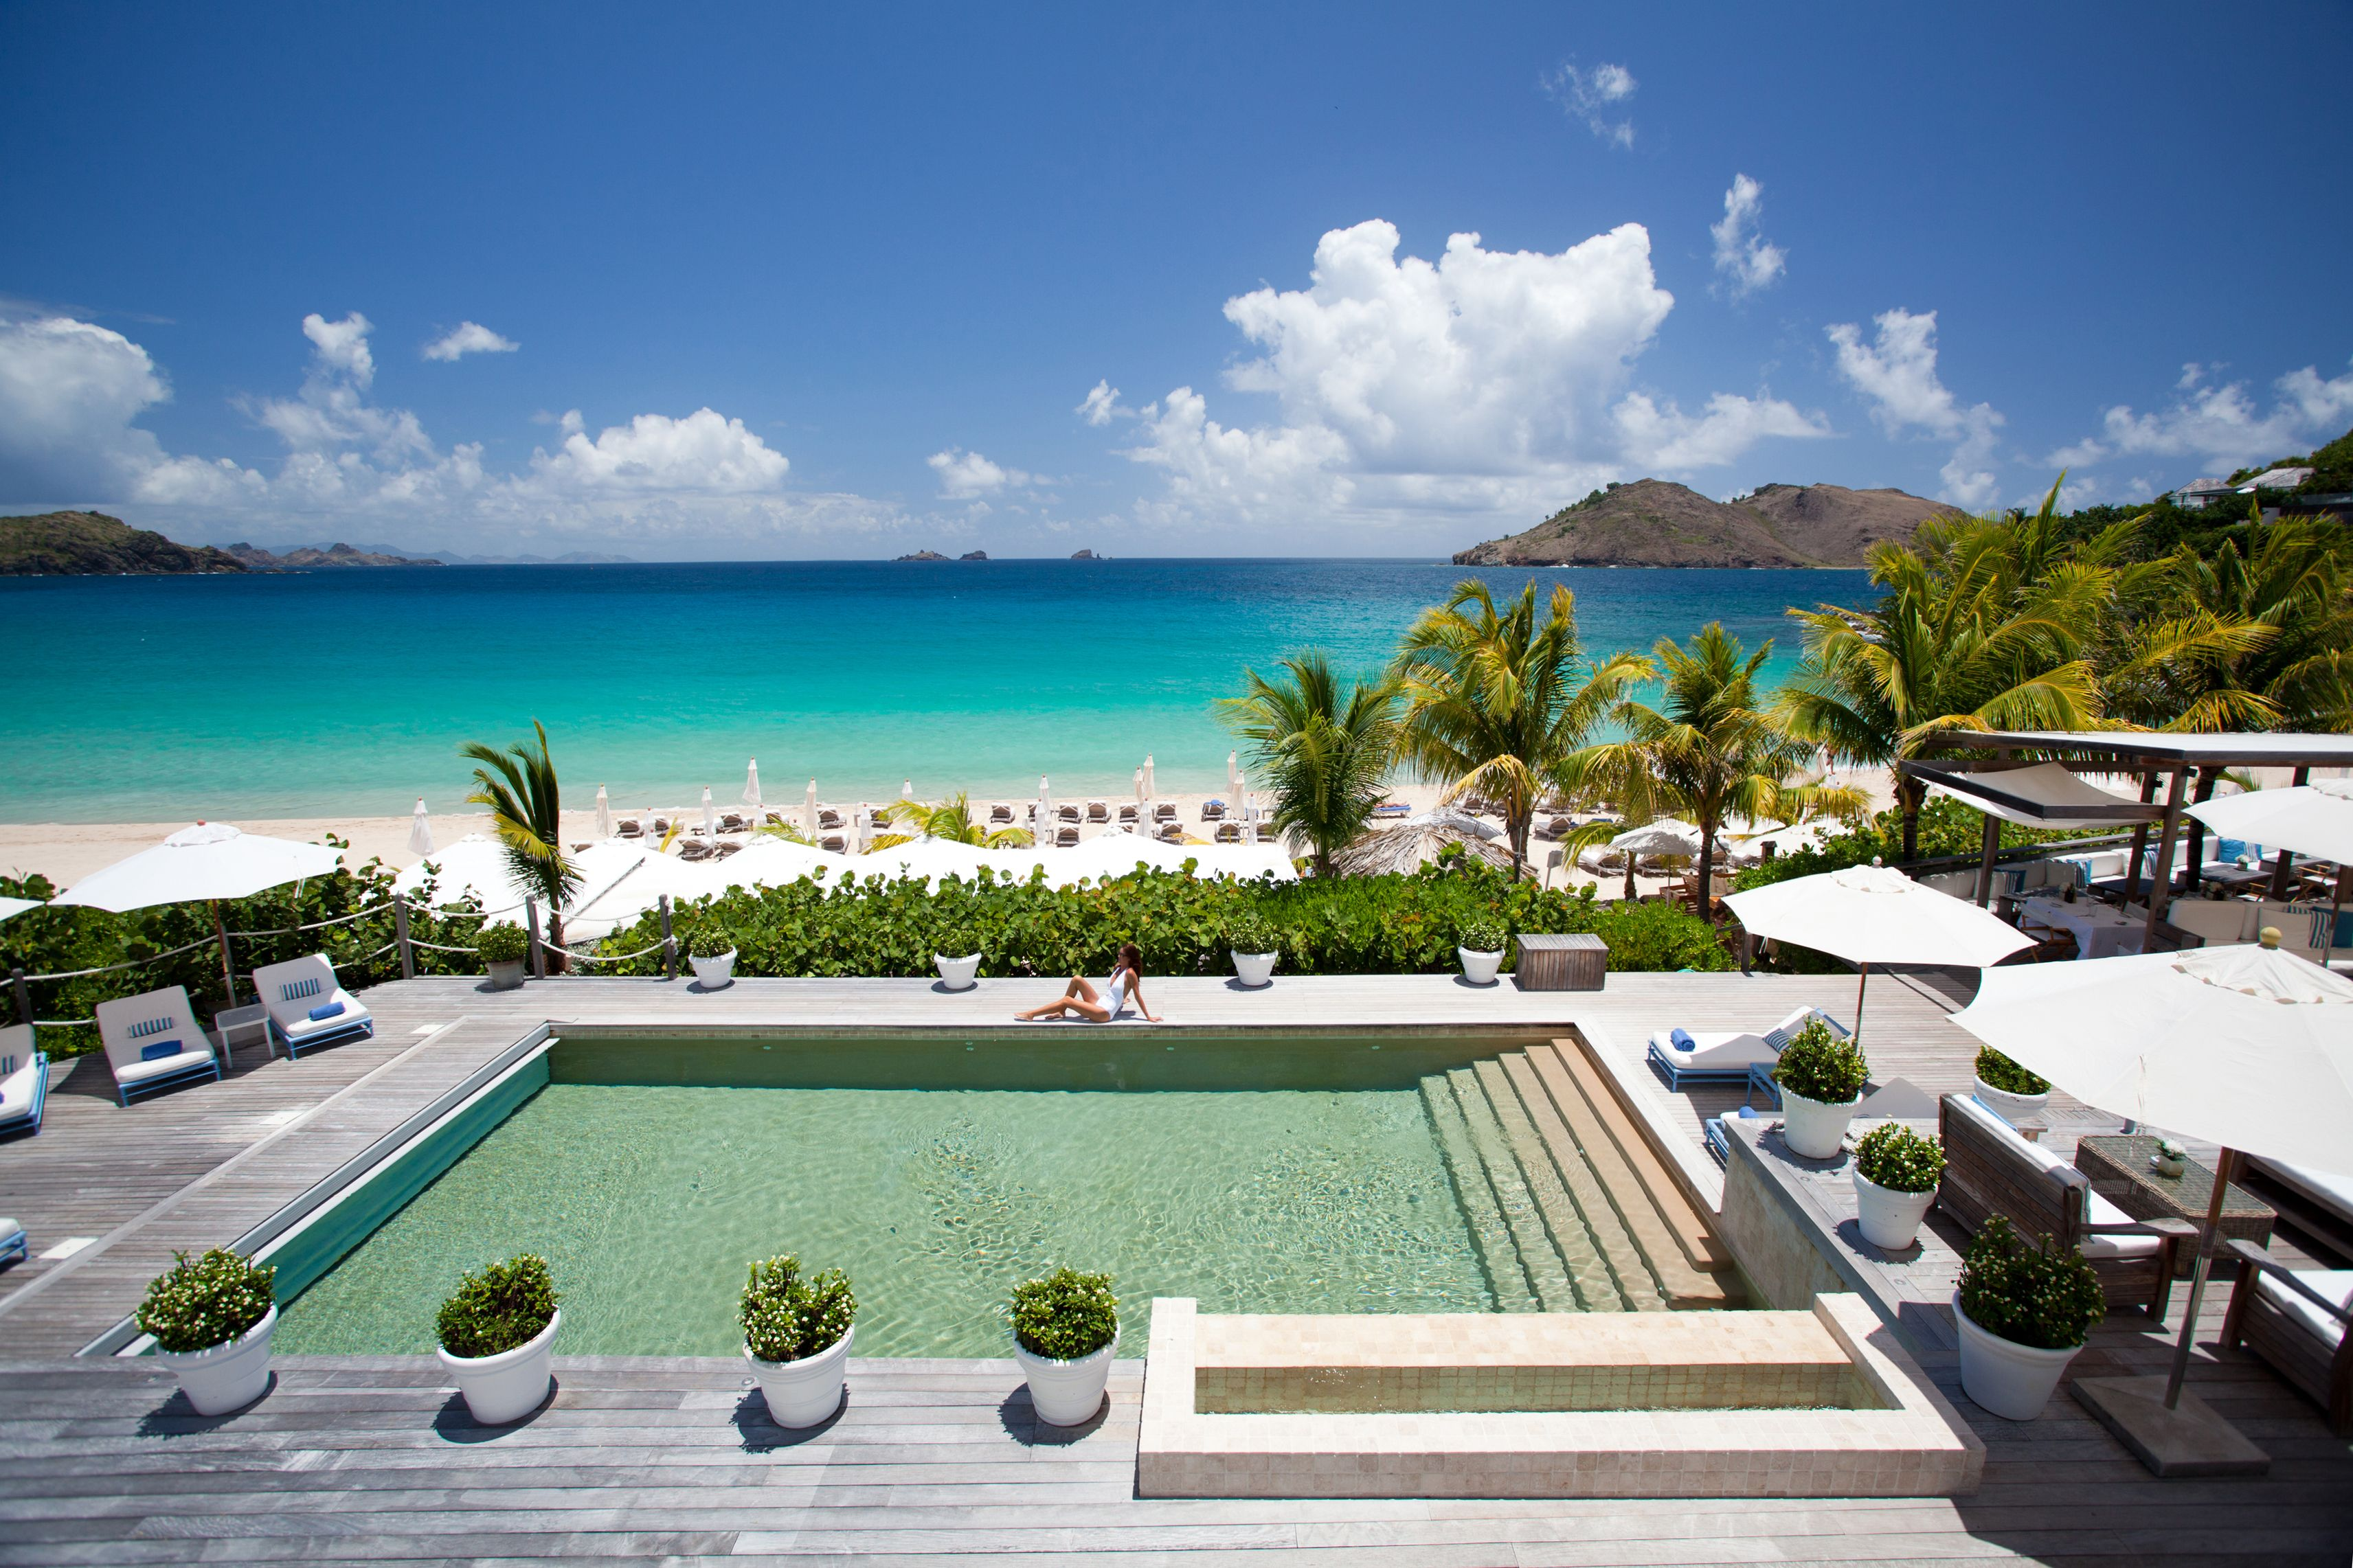 Nice The Pool The Beach @ Isle De France Hotel In St Barths